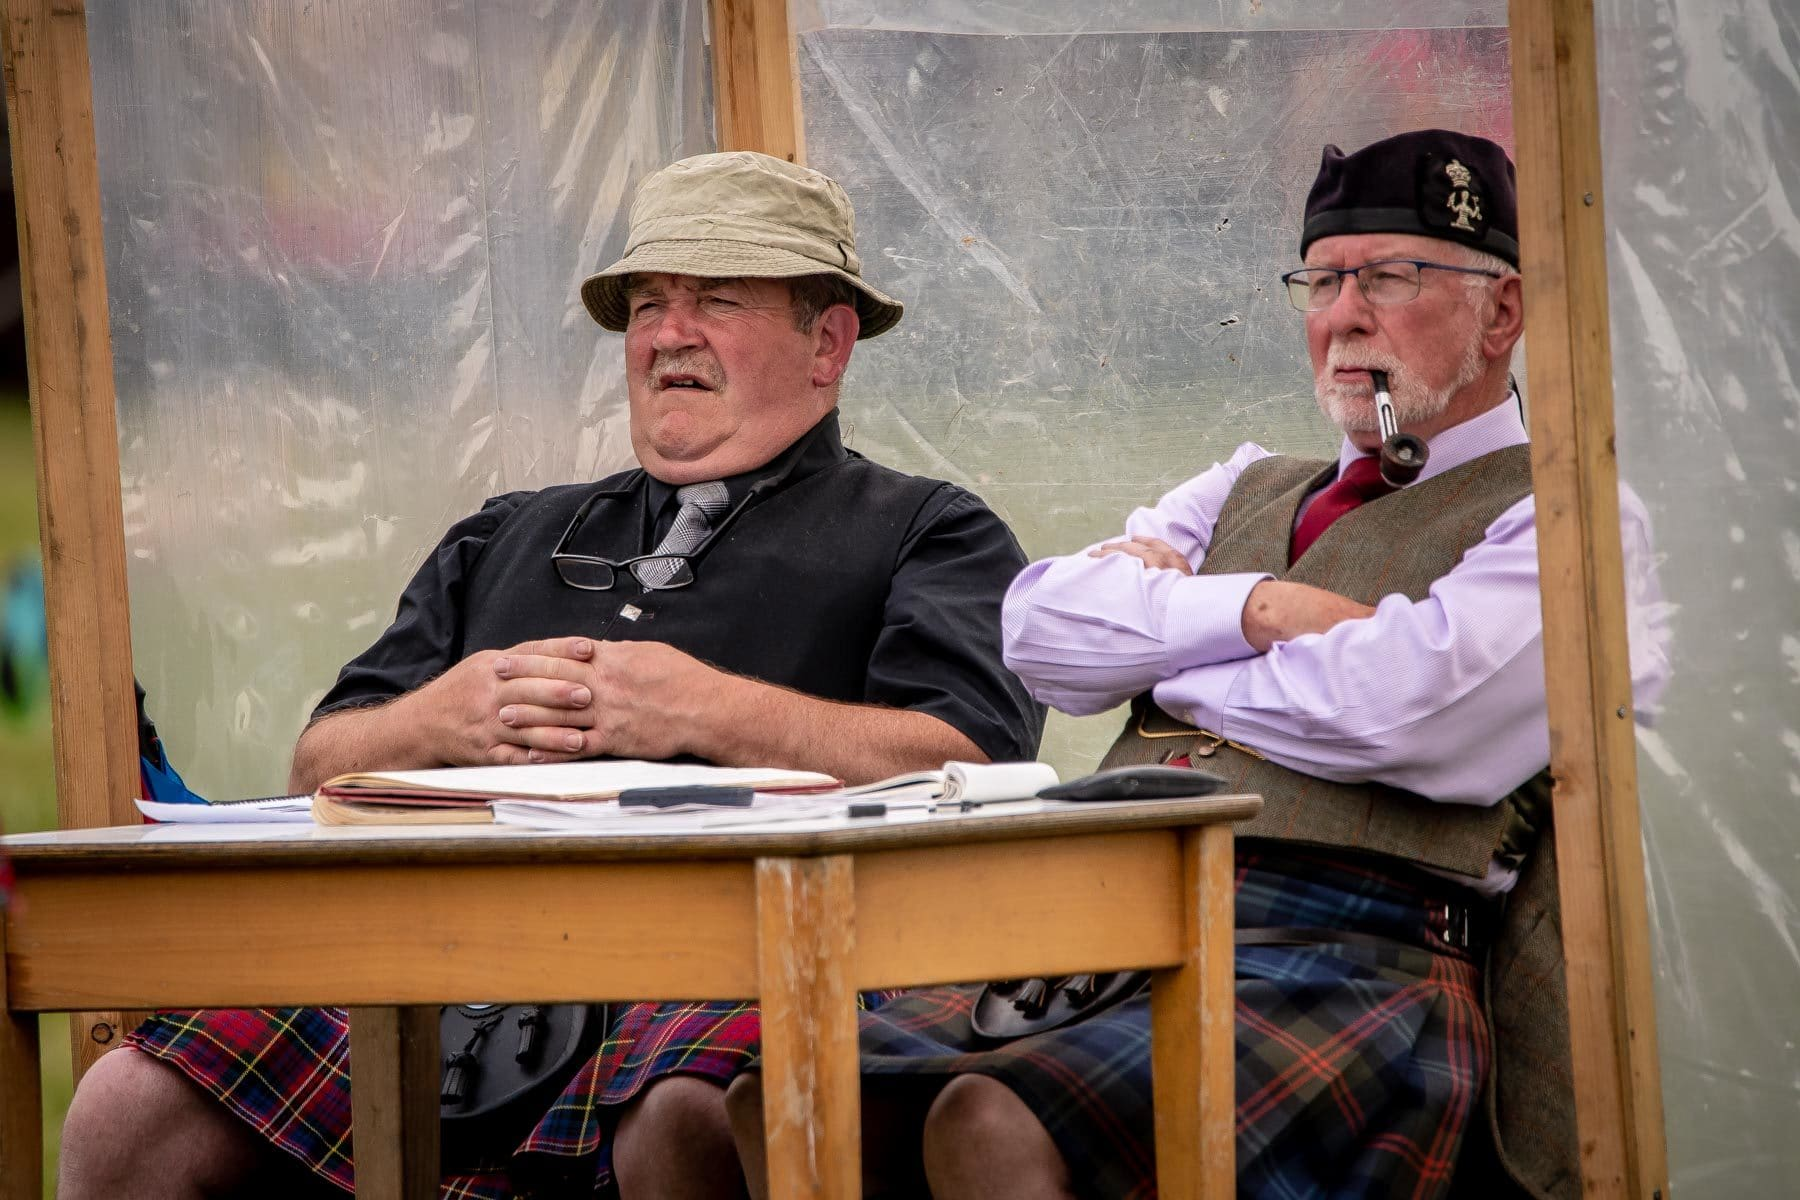 highland-games-under-the-expert-eye-of-referees-sir-edwards-roadtrip